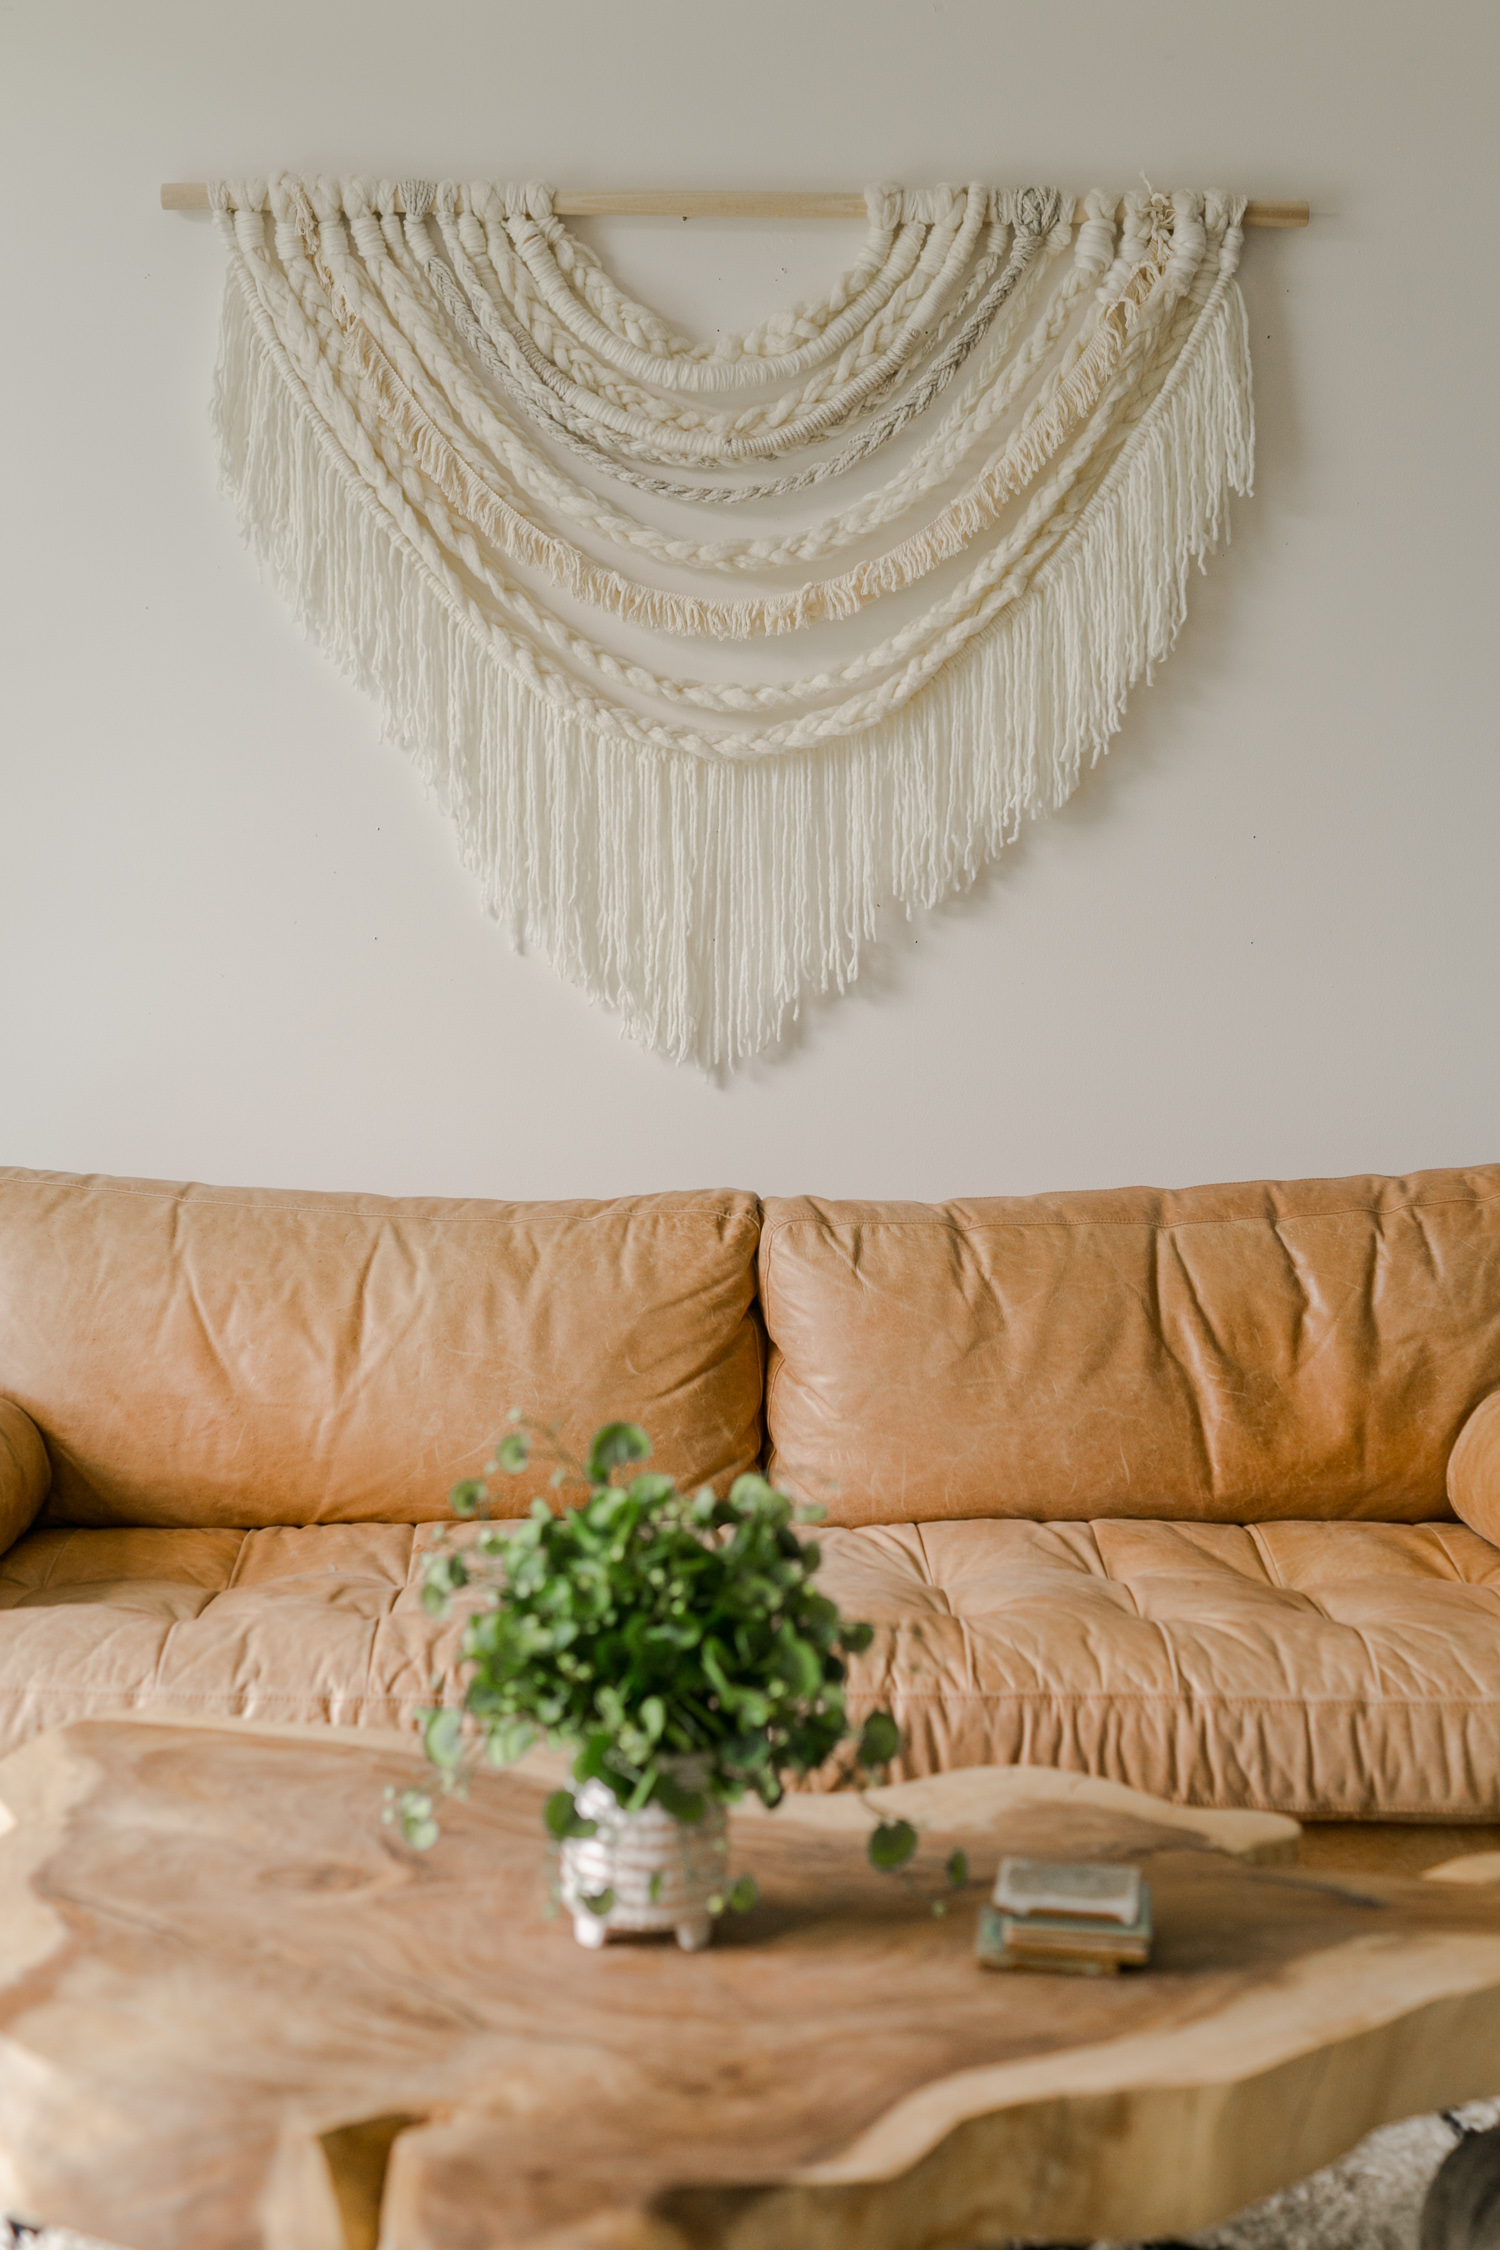 Large-Scale Braided Wall Hanging DIY